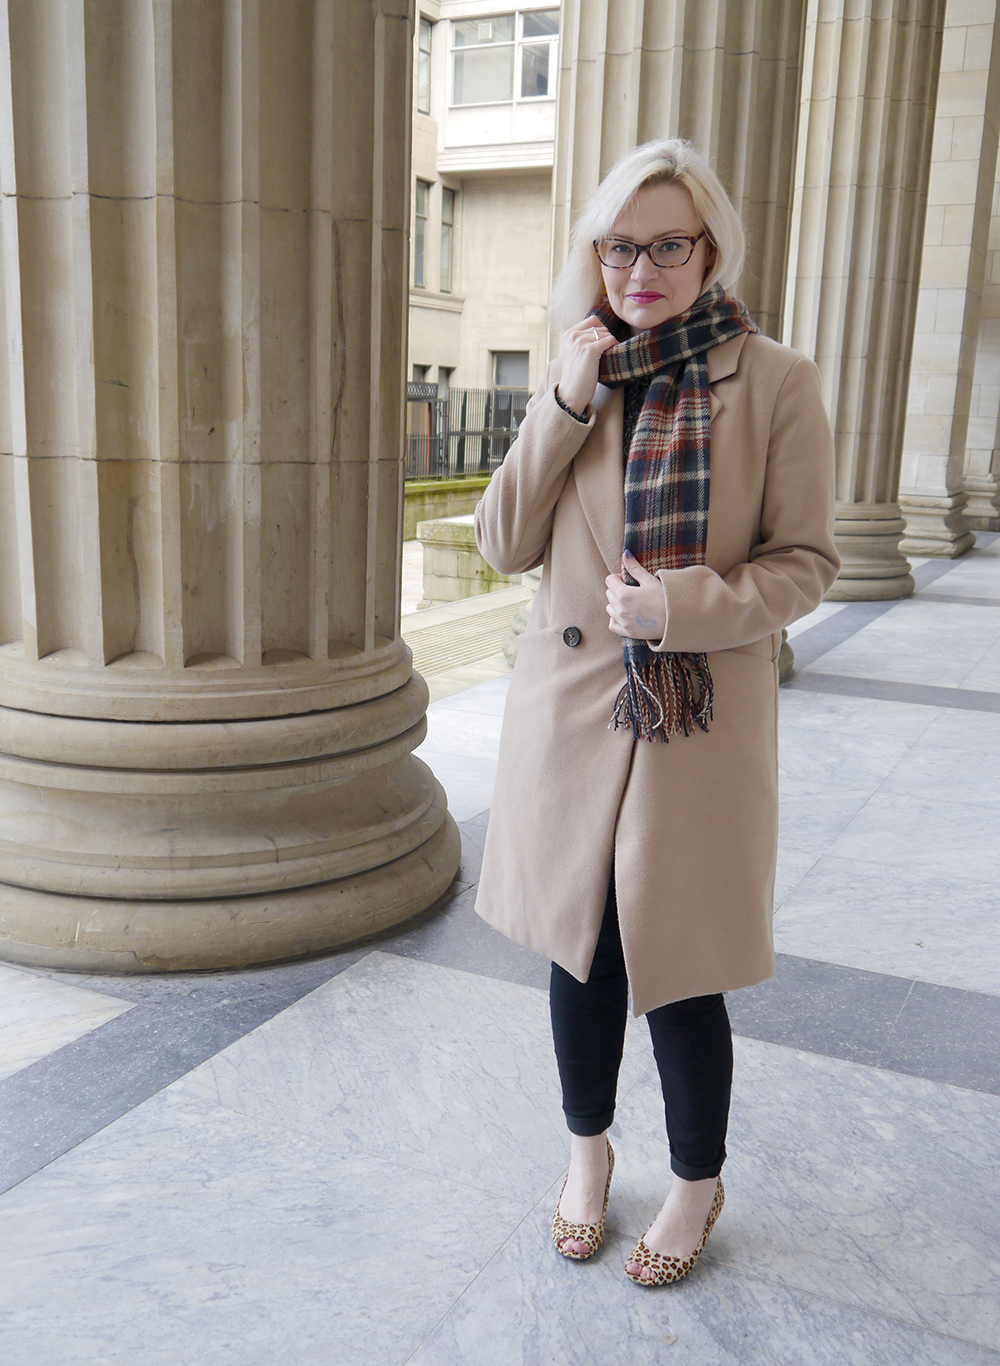 oasis camel coat, tartan scarf style, IOLLA glasses, Caird Hall Dundee, #dundeebloggers, Scottish fashion blogger, leopard print peeptoe shoes, lou lous vintage fair